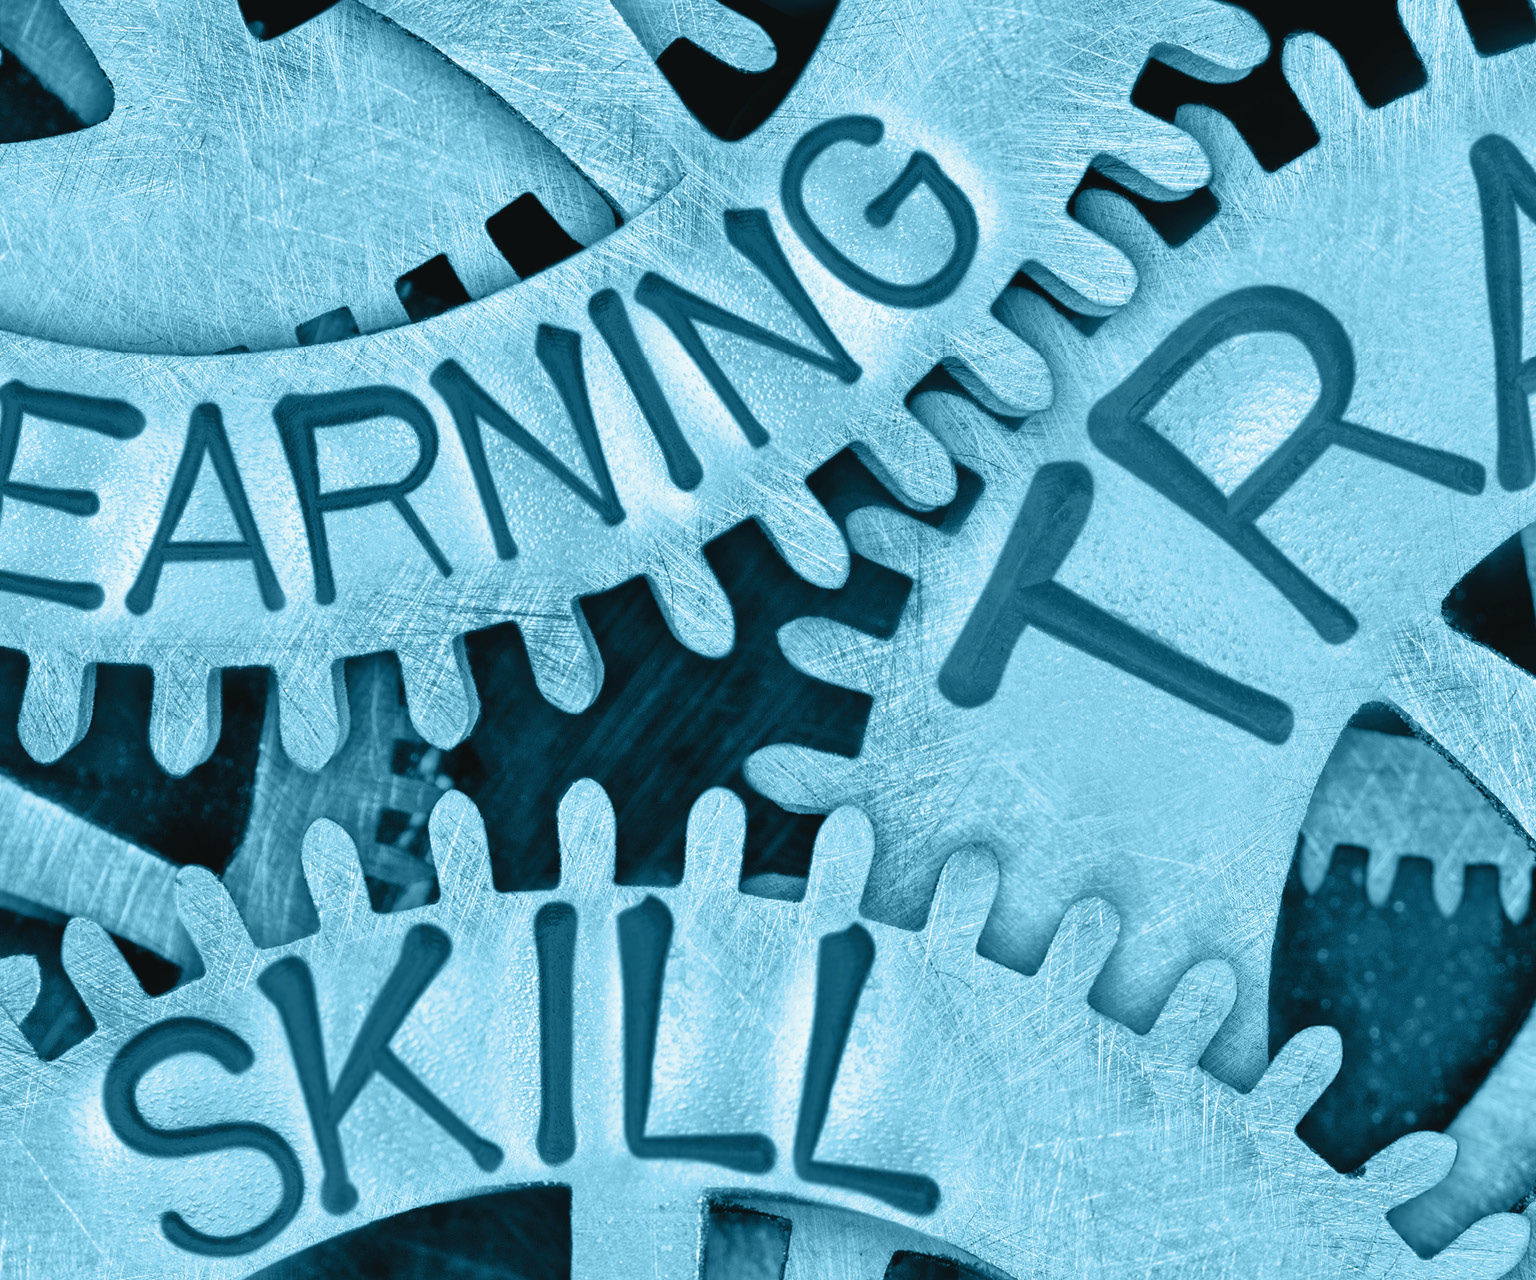 erp training, gears, learning, skills